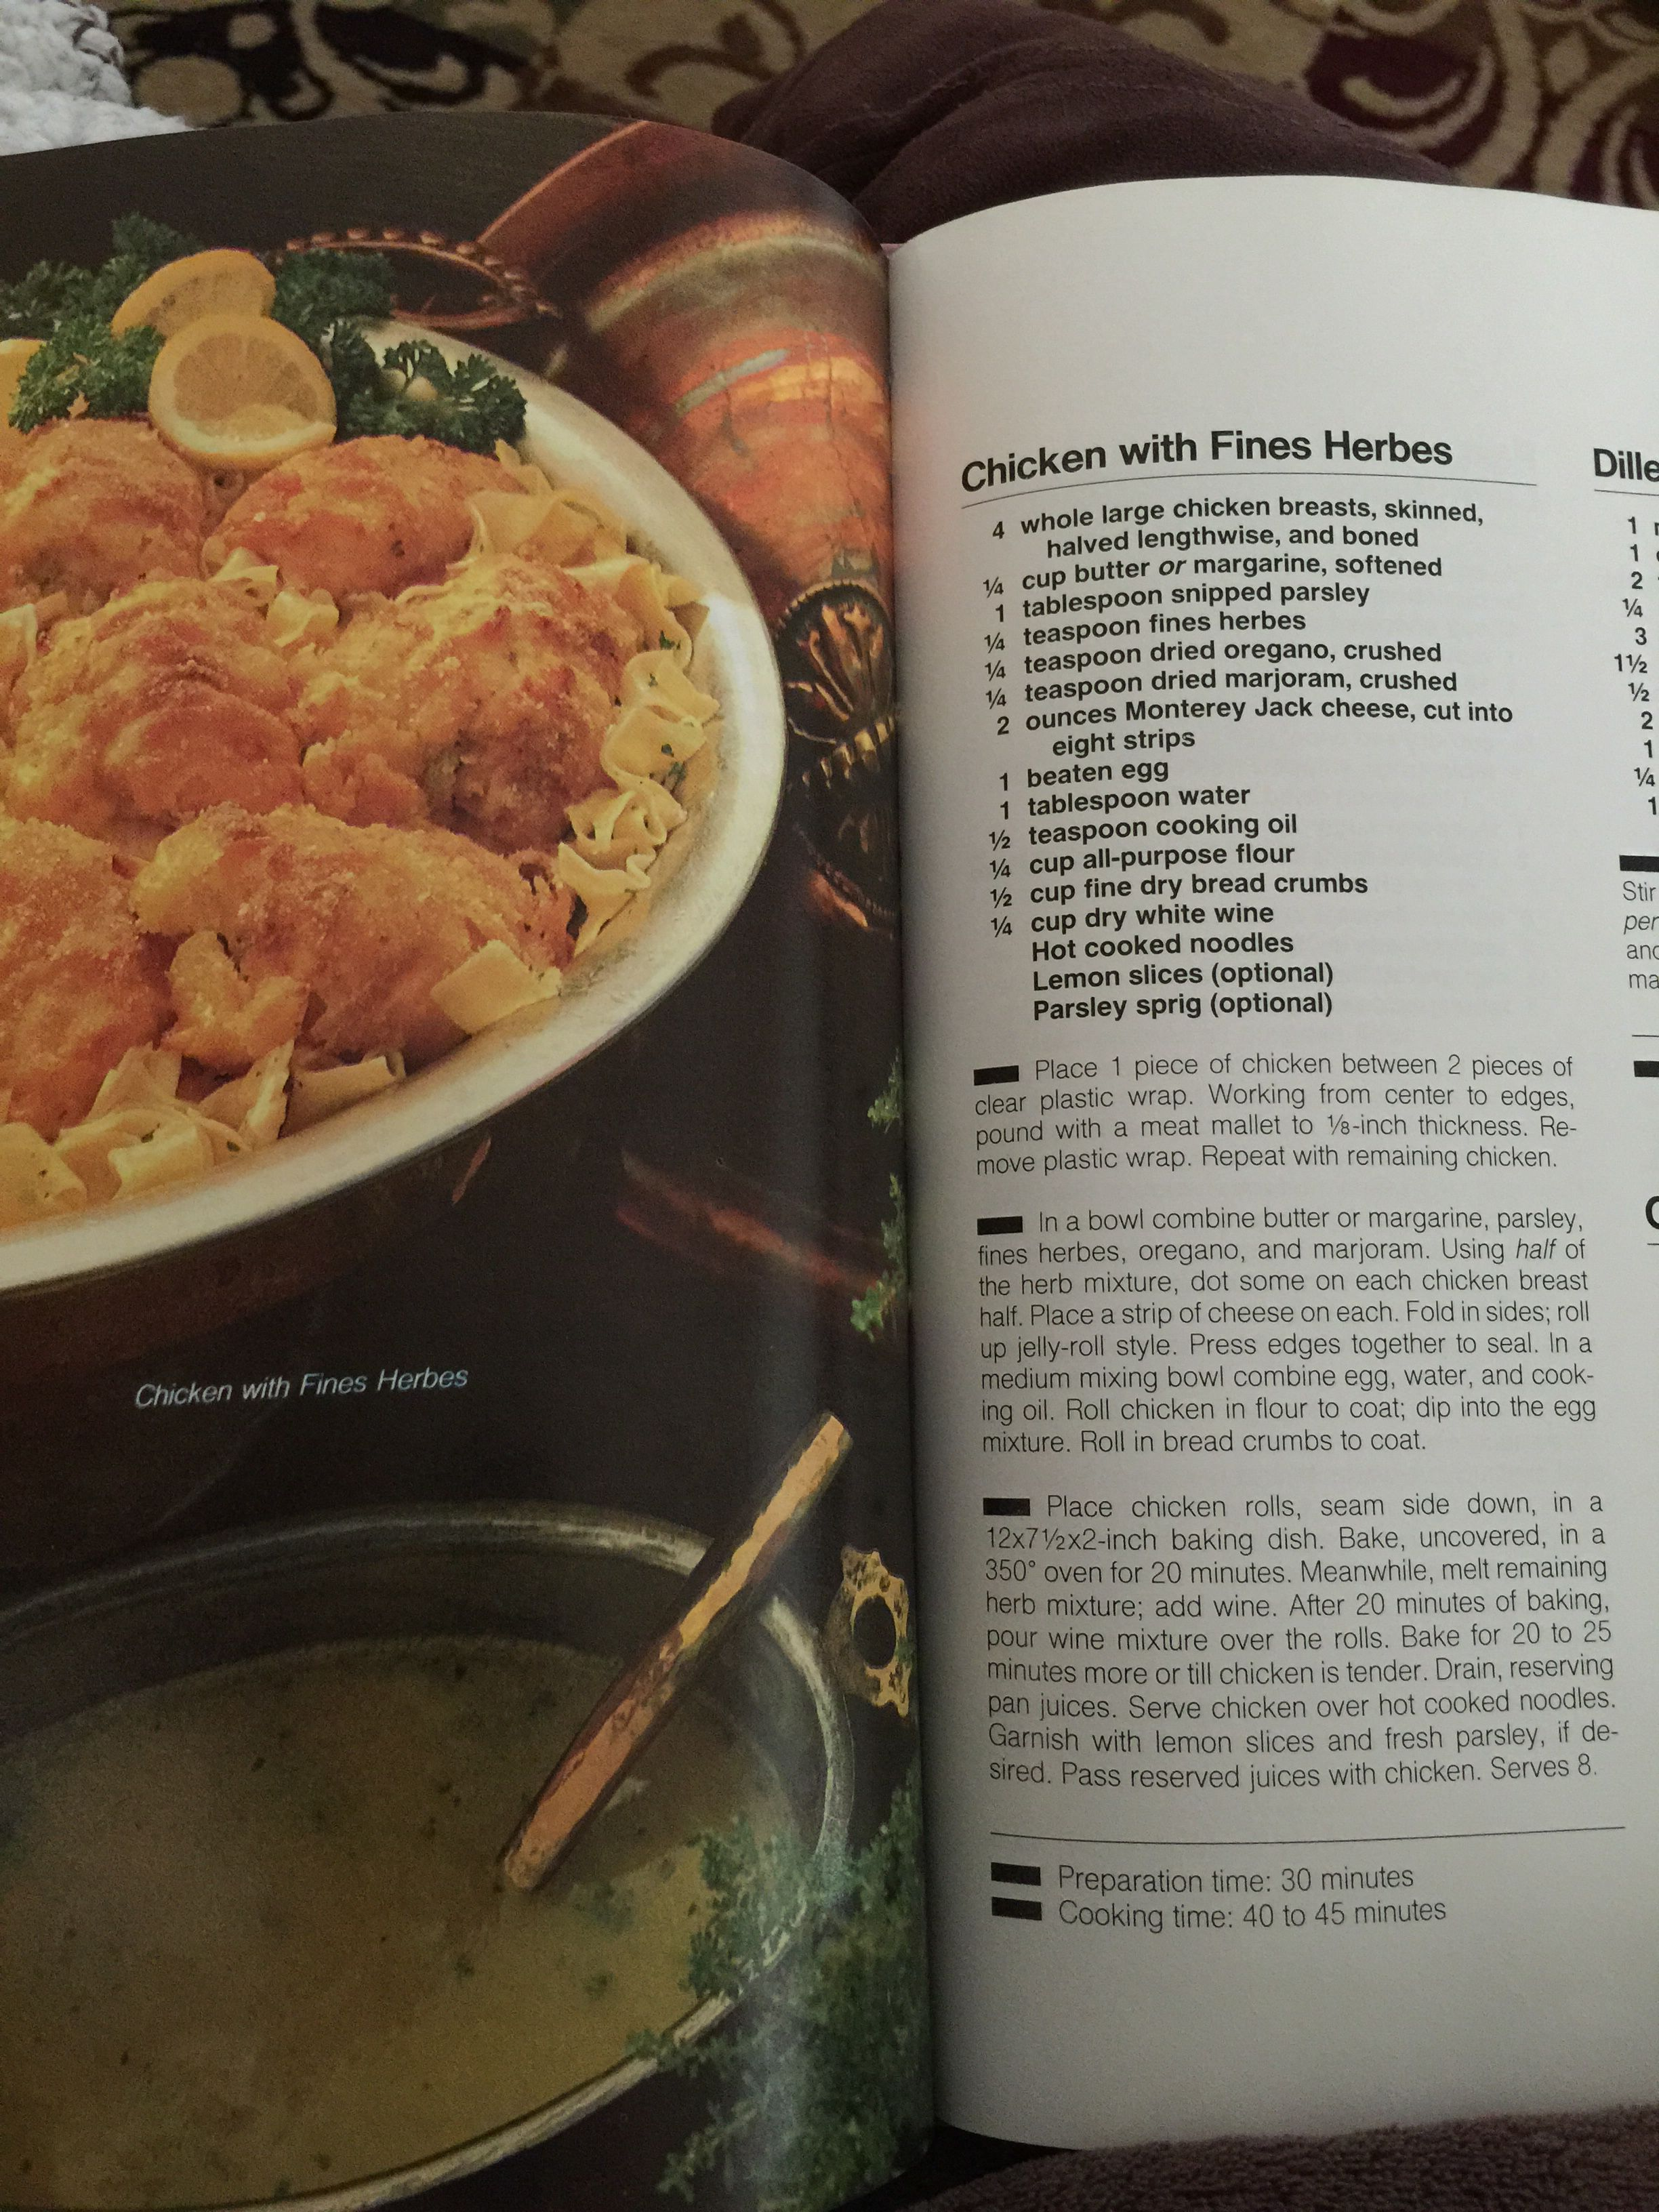 c3841c5d47b6f4dc1041ac9557974147 - Better Homes And Gardens Cooking For Two Recipes